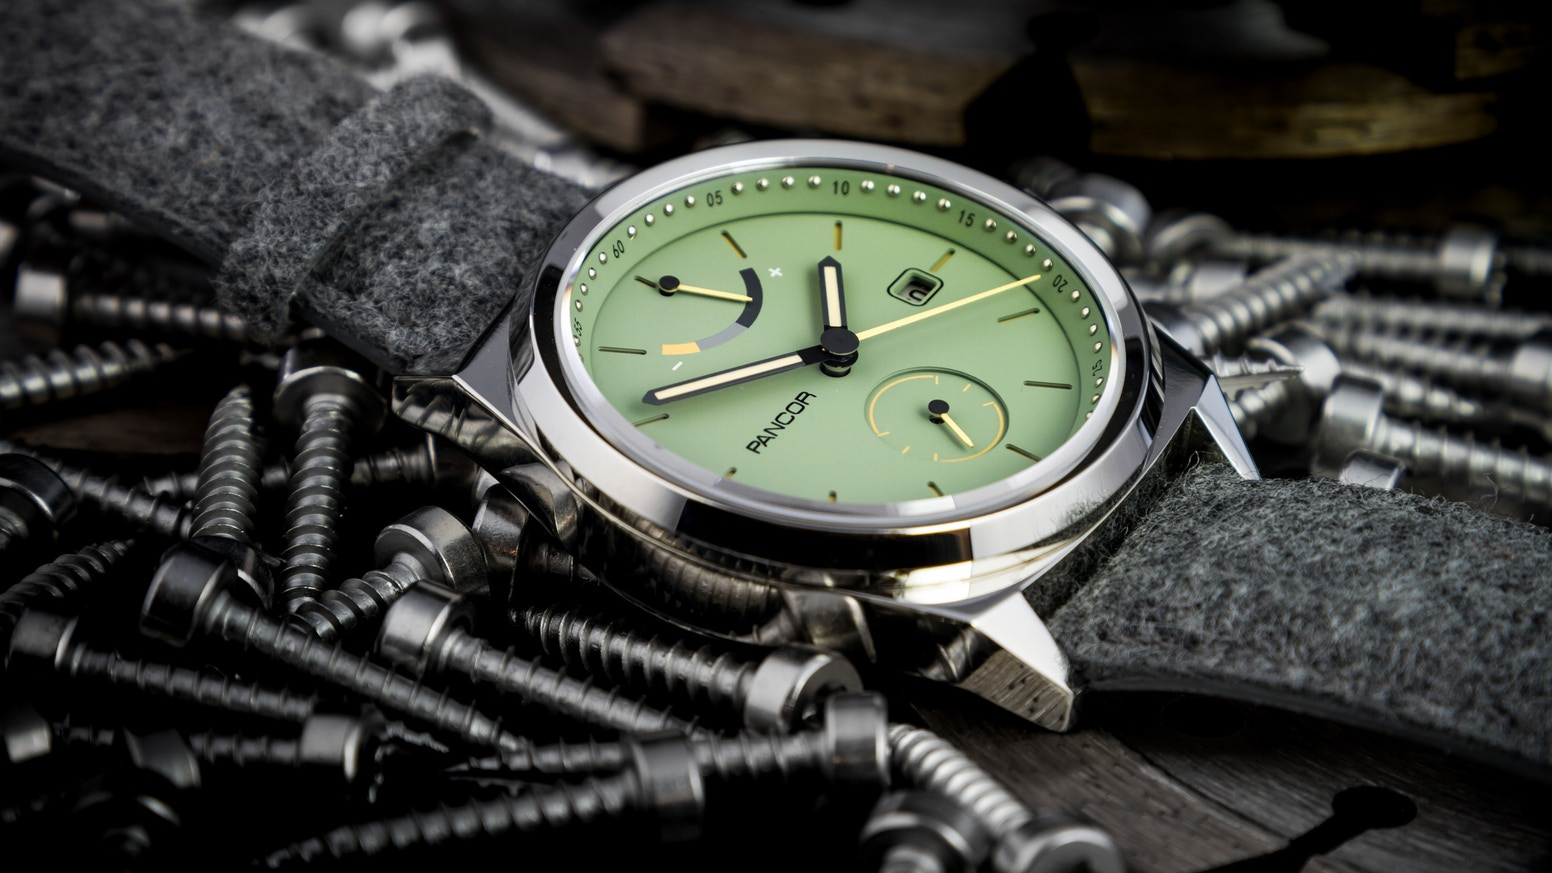 The P02 automatic watch by Pancor: Allround and contemporary